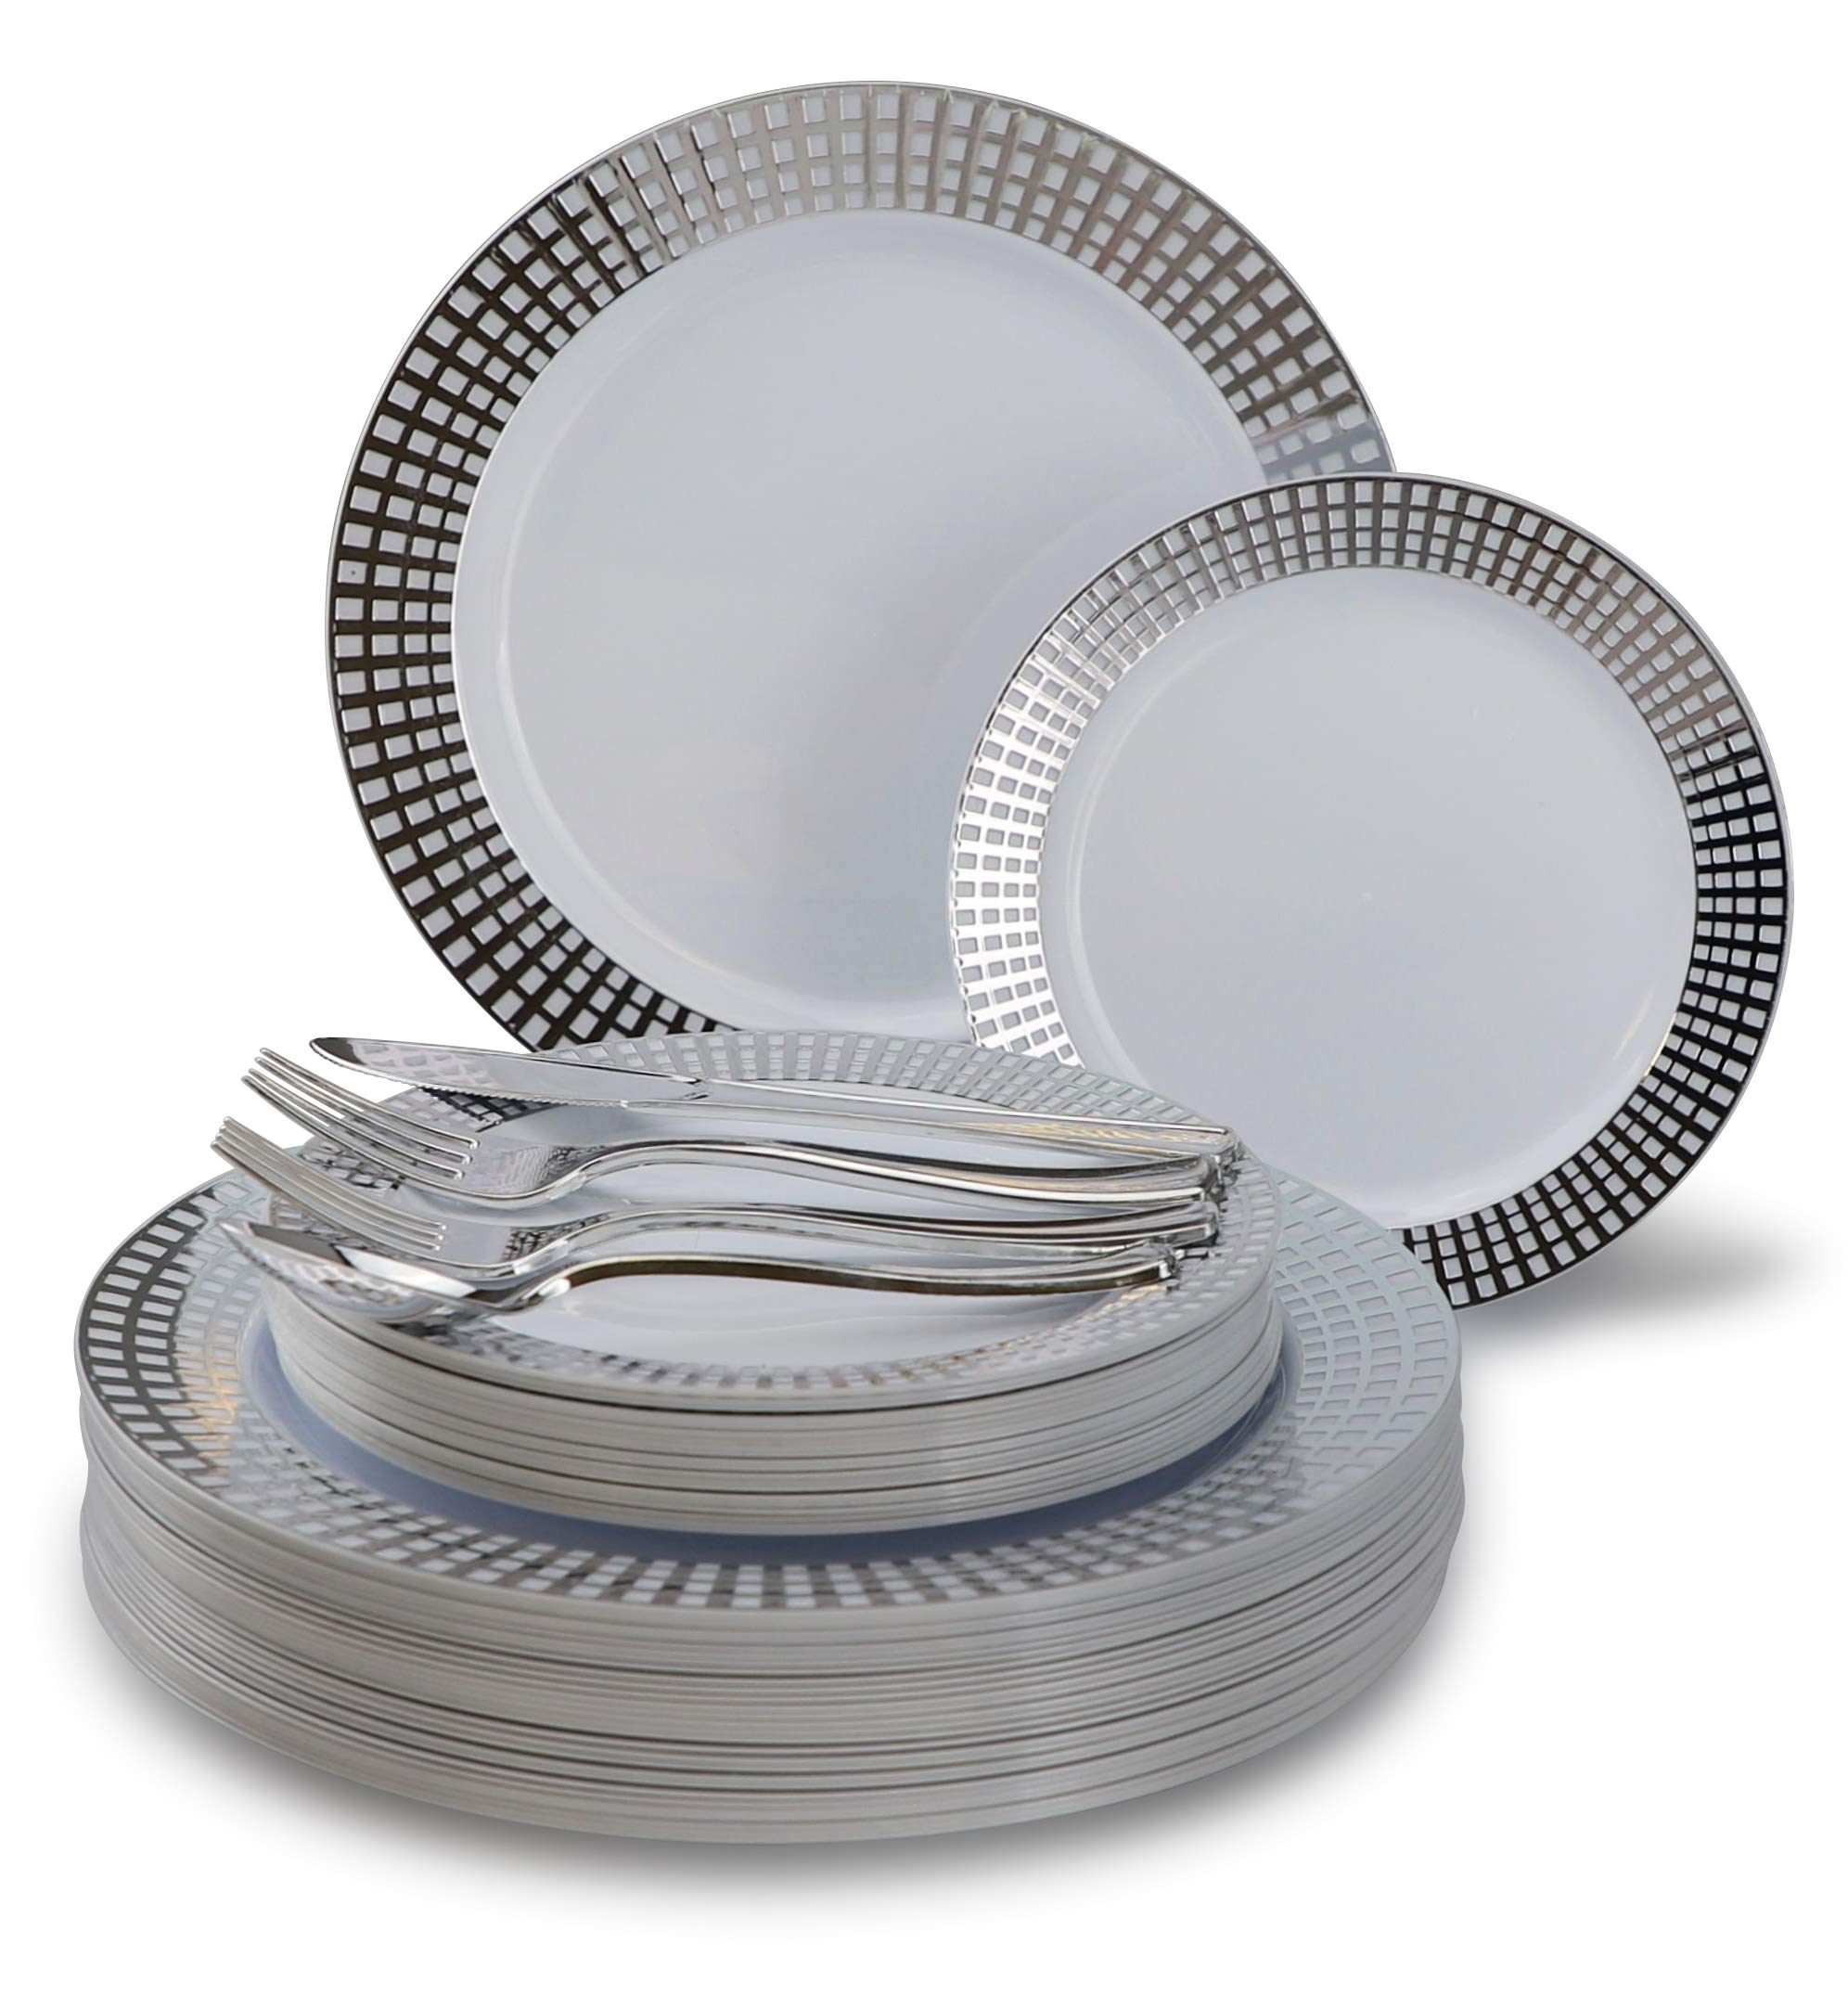 New'' OCCASIONS'' 150 piece / 25 guest Wedding Party Disposable Dinnerware Set - Plastic Plates and Silverware for 25 guests (Princess White/Silver)